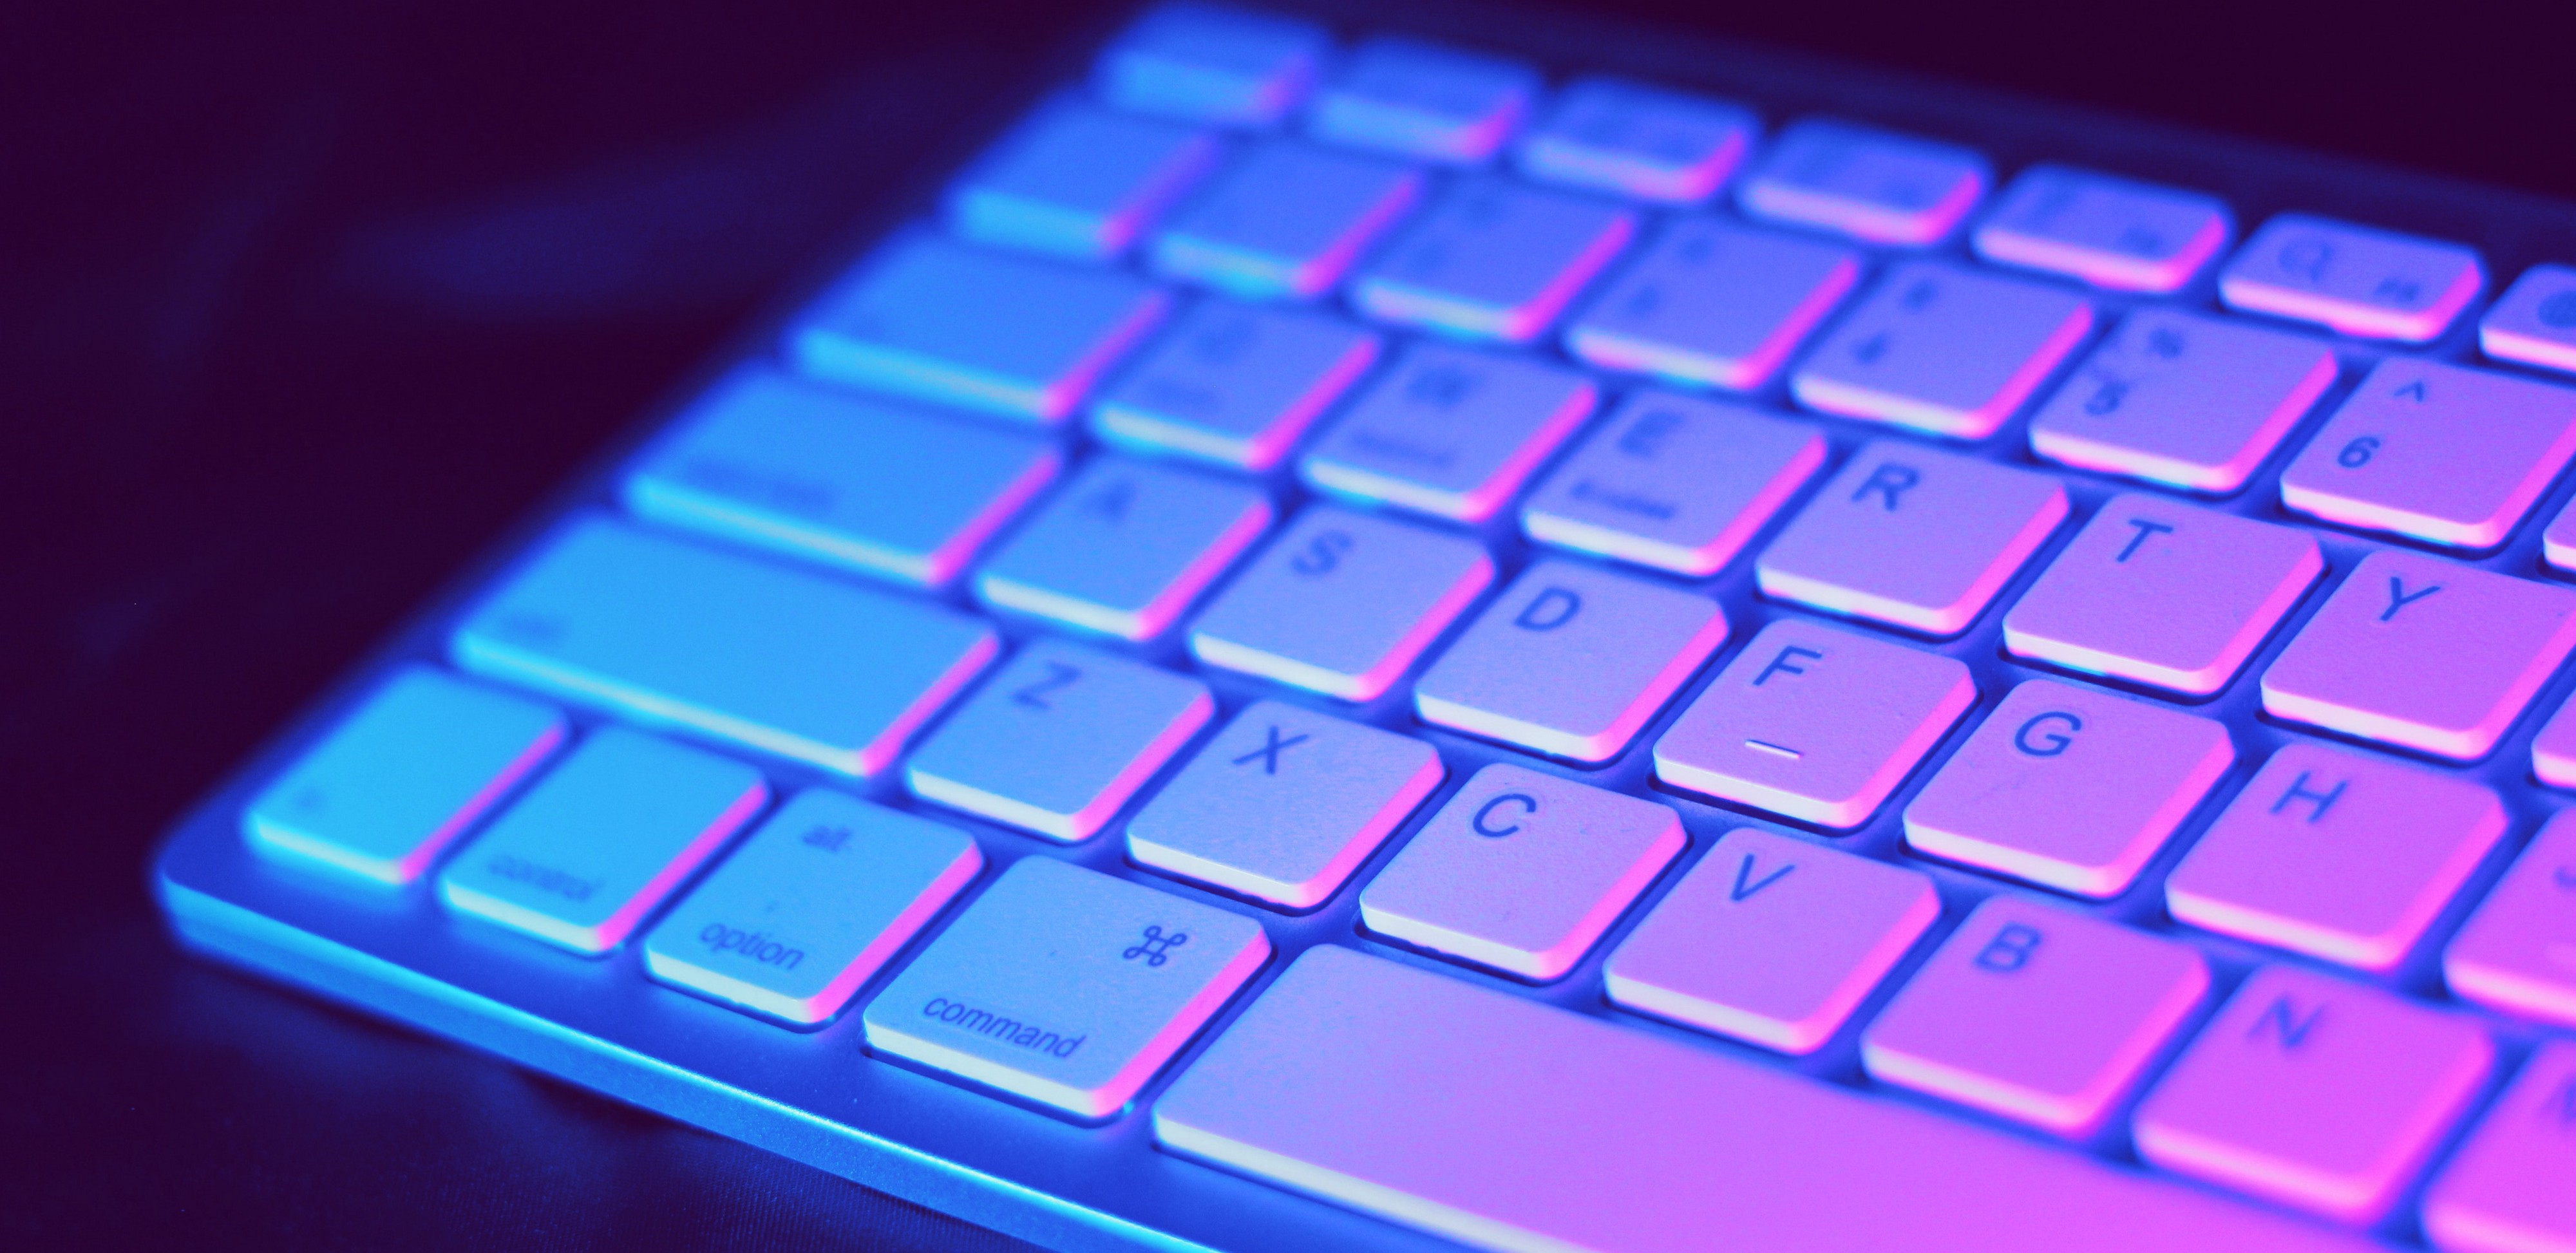 keyboard with pink blue lighting